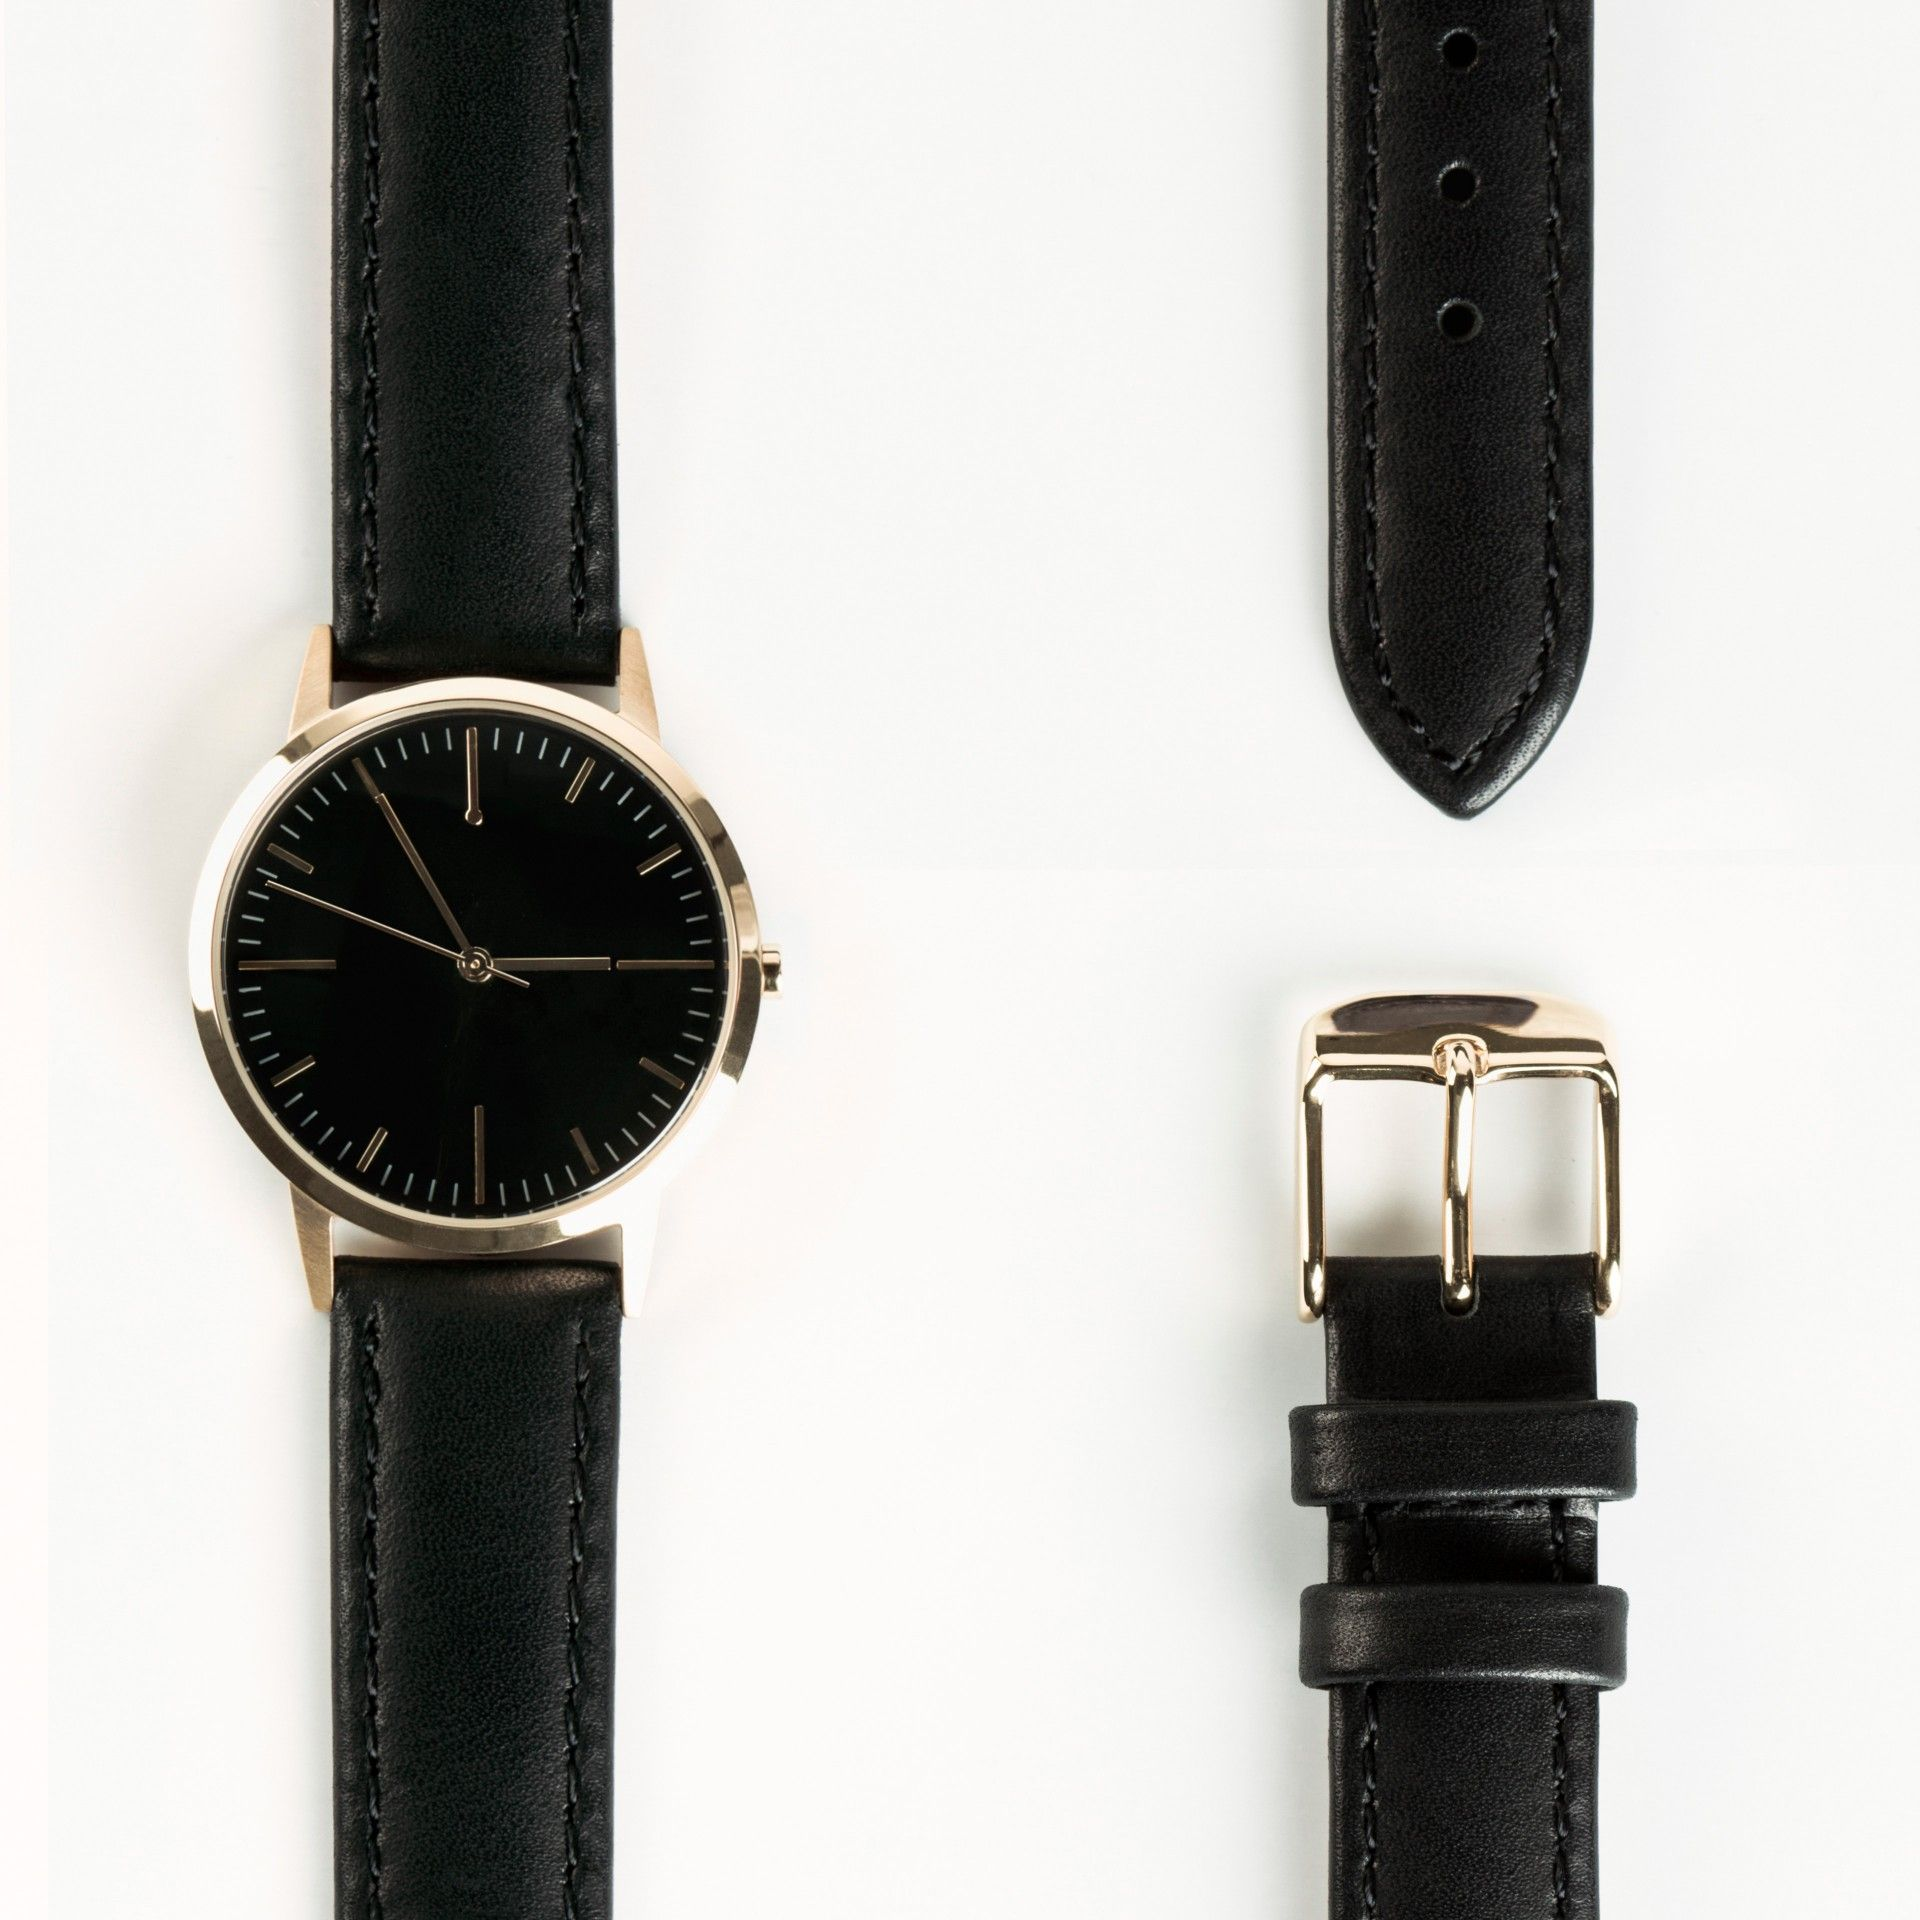 francesca lenora product s watches watch minimal do navy cl